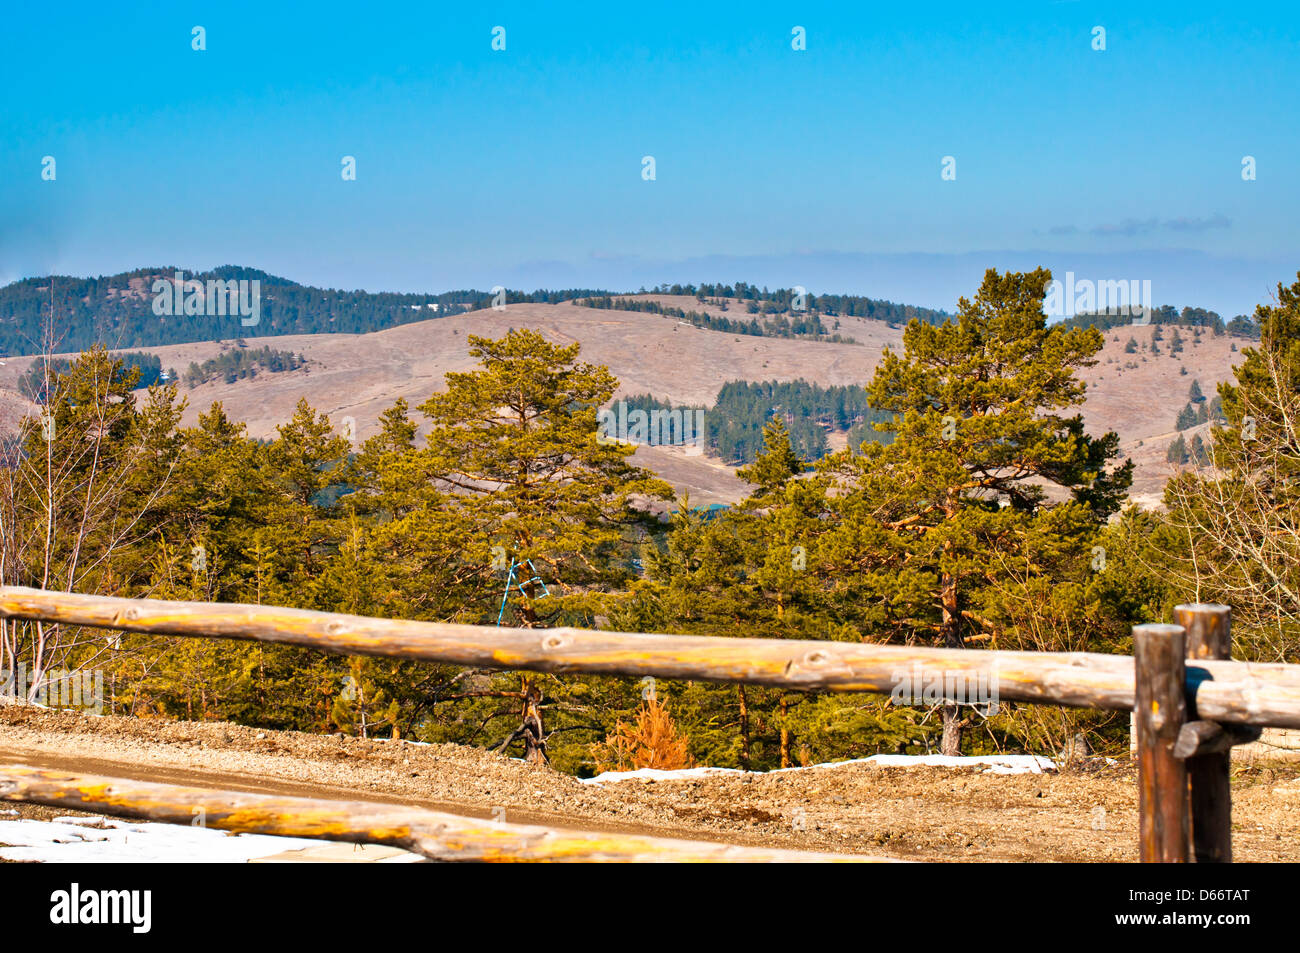 Zlatibor landscape in Tornik resort with wooden fence - Stock Image